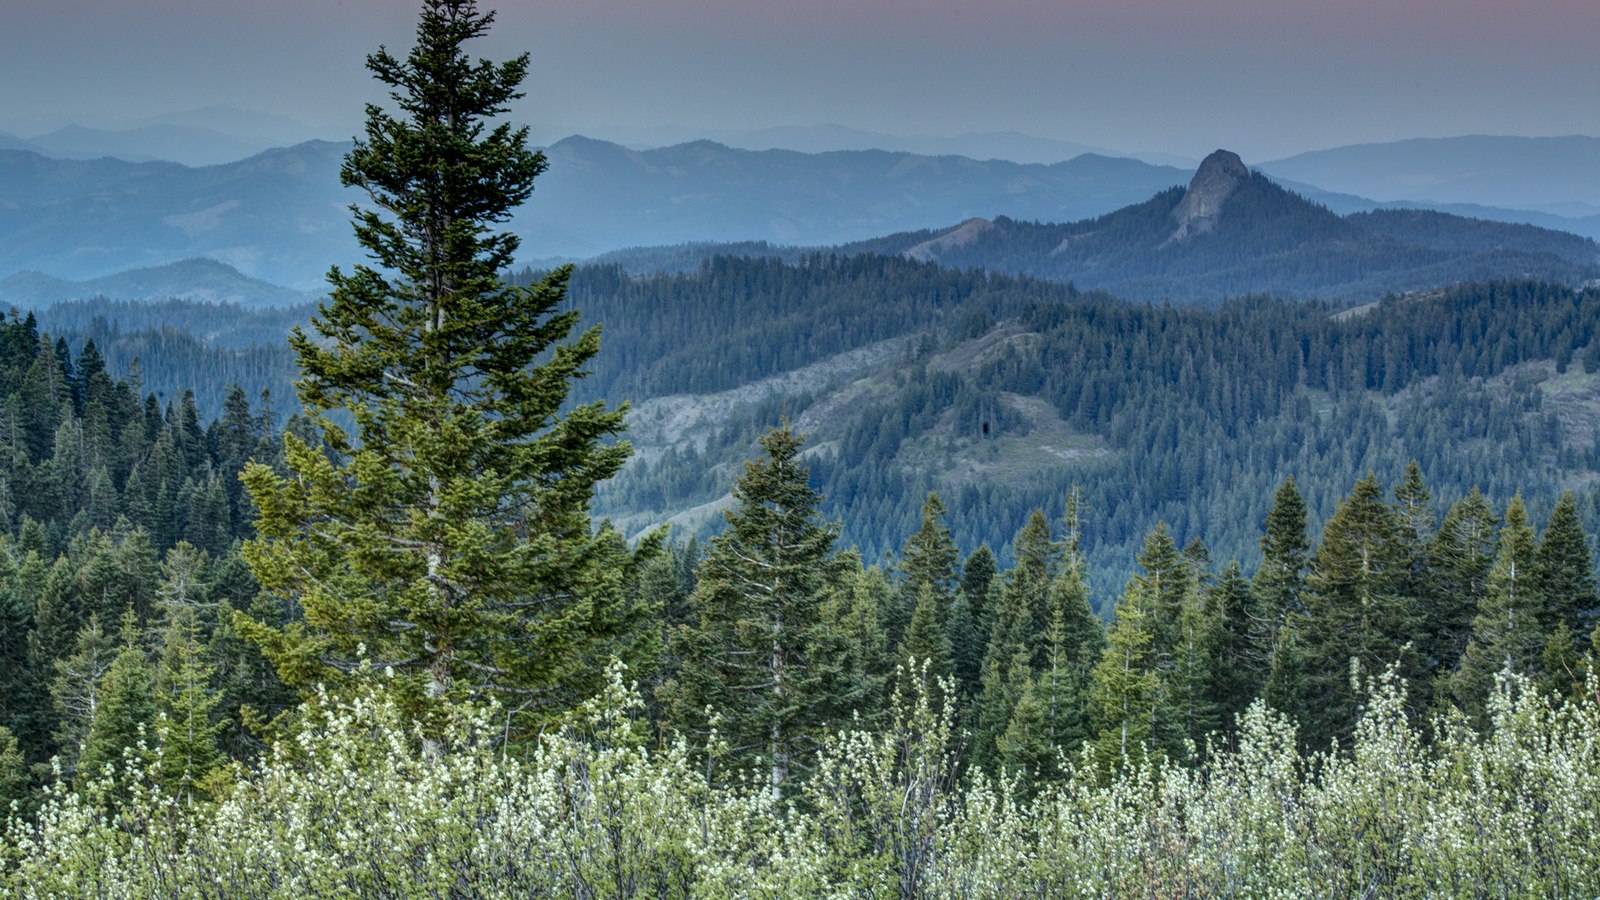 <h4>CASCADE-SISKIYOU (OREGON): THREATENED</h4><h5>Oregon's Cascade-Siskiyou National Monument would see more logging and be reduced in size.</h5><em>Bob Wick / BLM</em>